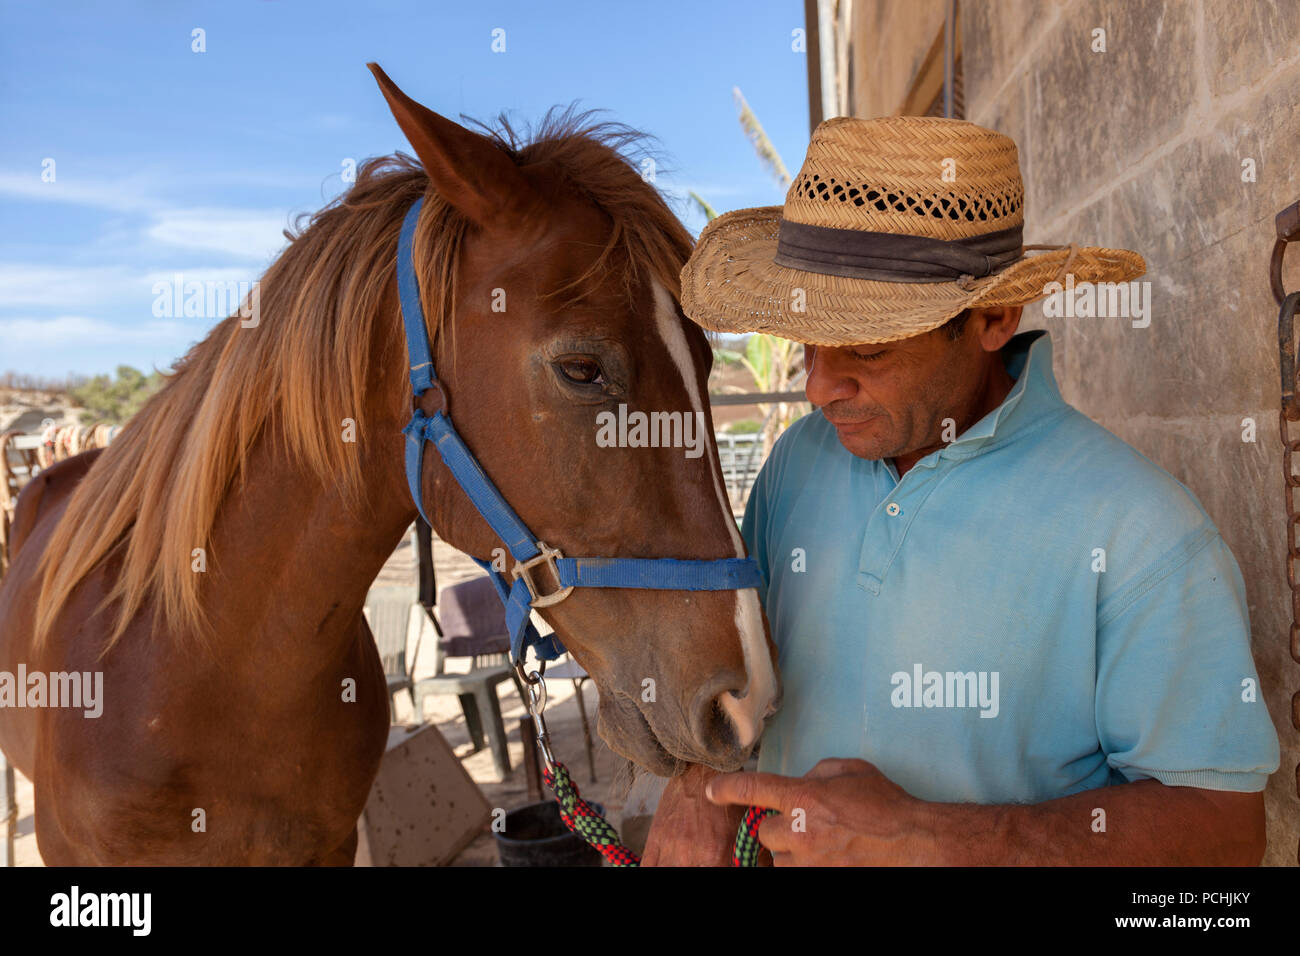 A horse whisperer interacts with one of his horses at a farm for equine-assisted therapy. - Stock Image